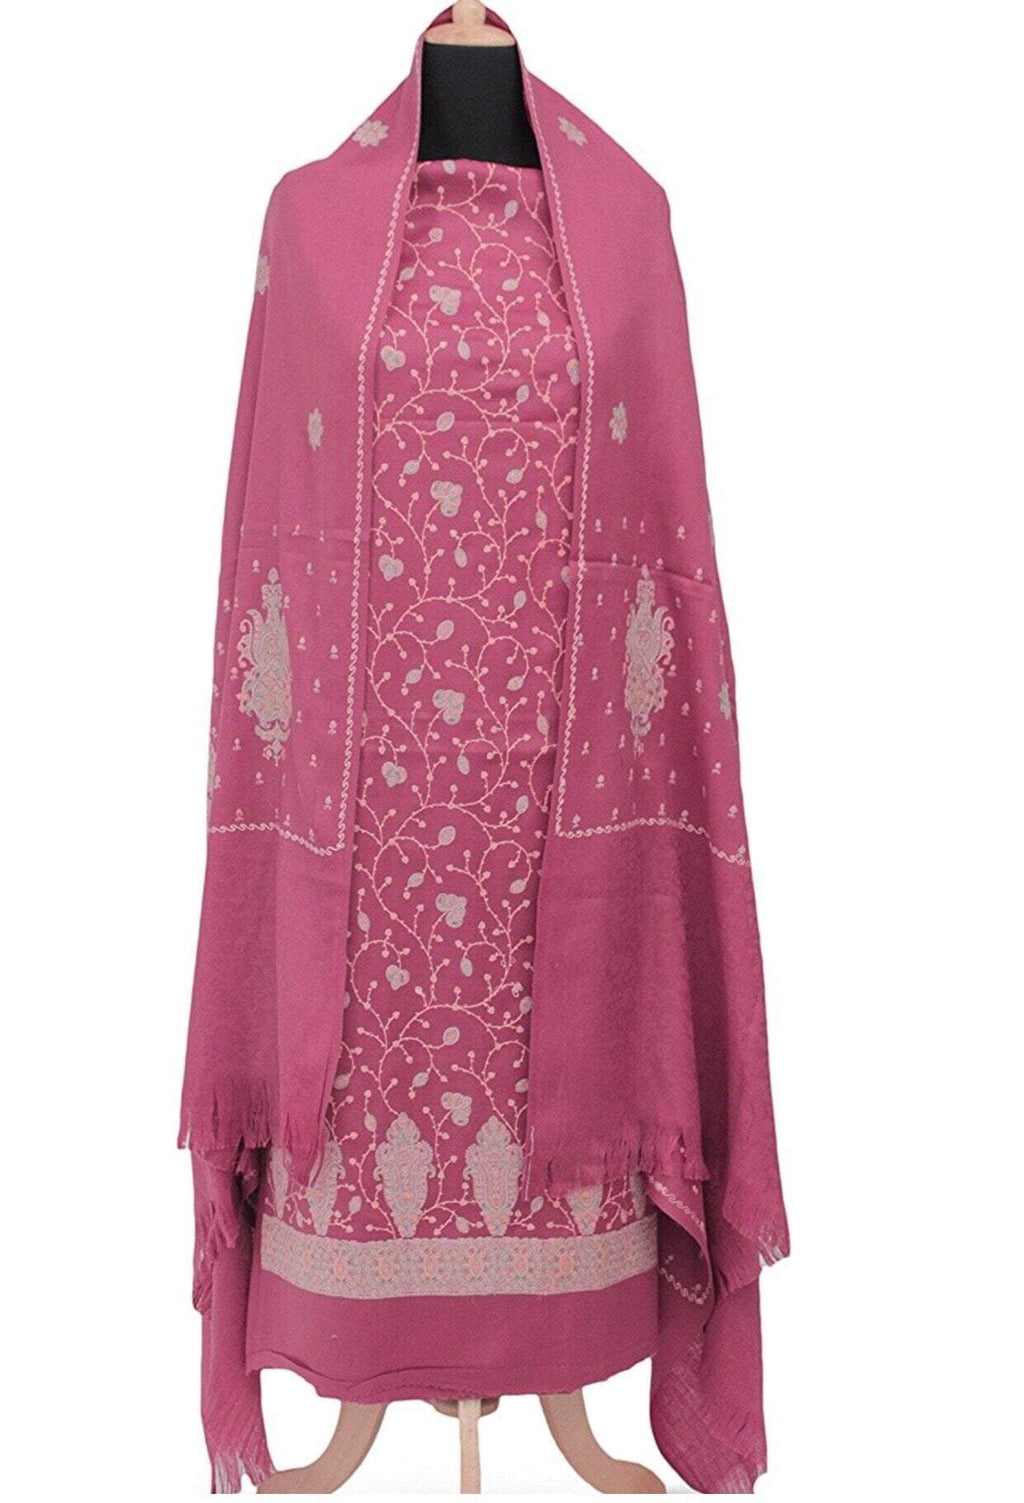 Pashtush India Suit Pashtush Women's 3 pc Kashmiri Embroidery suit in Soft Pashmina handfeel Wool